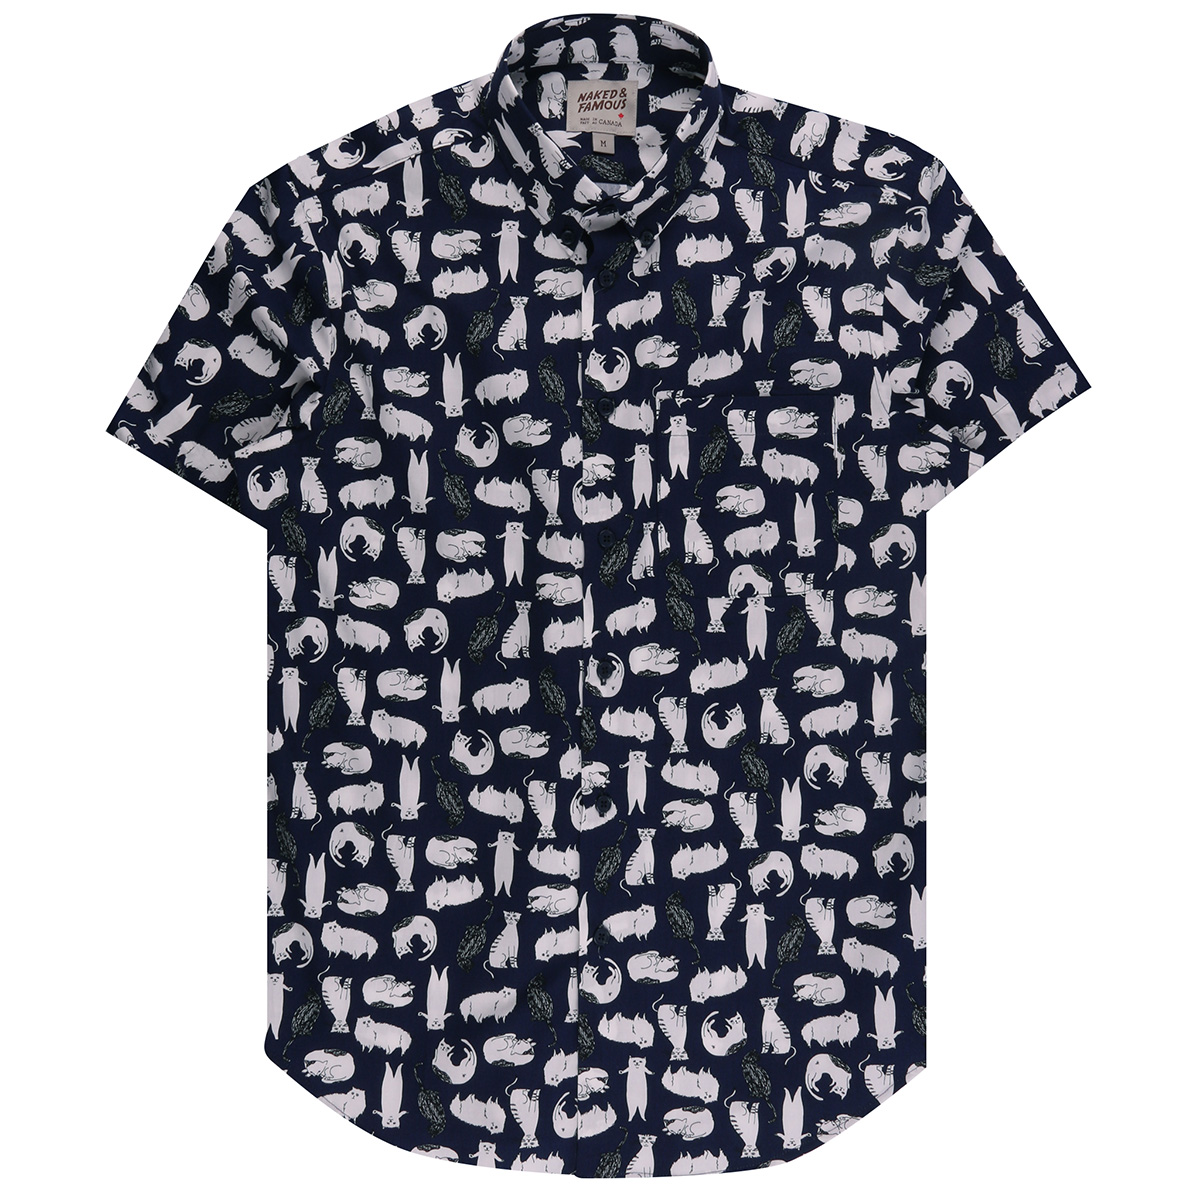 CATS SKETCHES - NAVY - Short Sleeve Easy Shirt